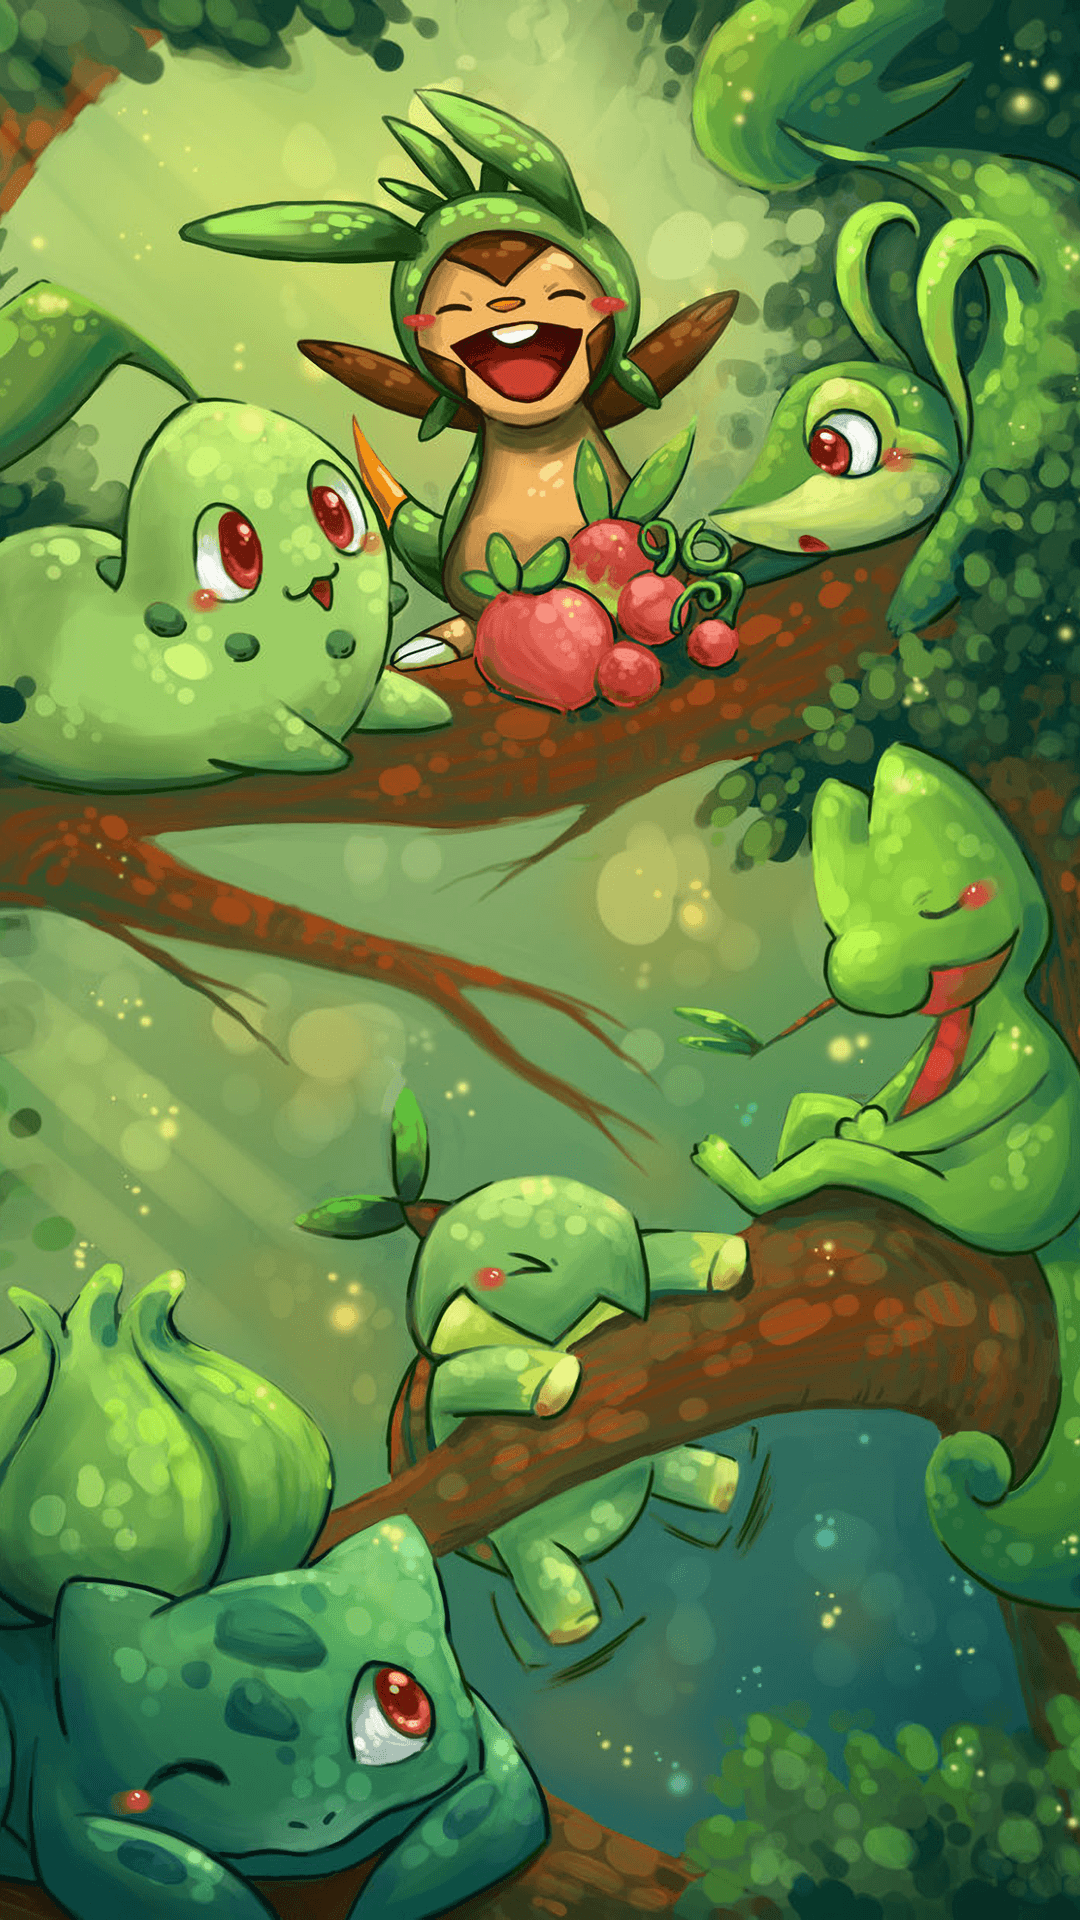 1080x1920] Grass [Pokemon] : AnimePhoneWallpapers